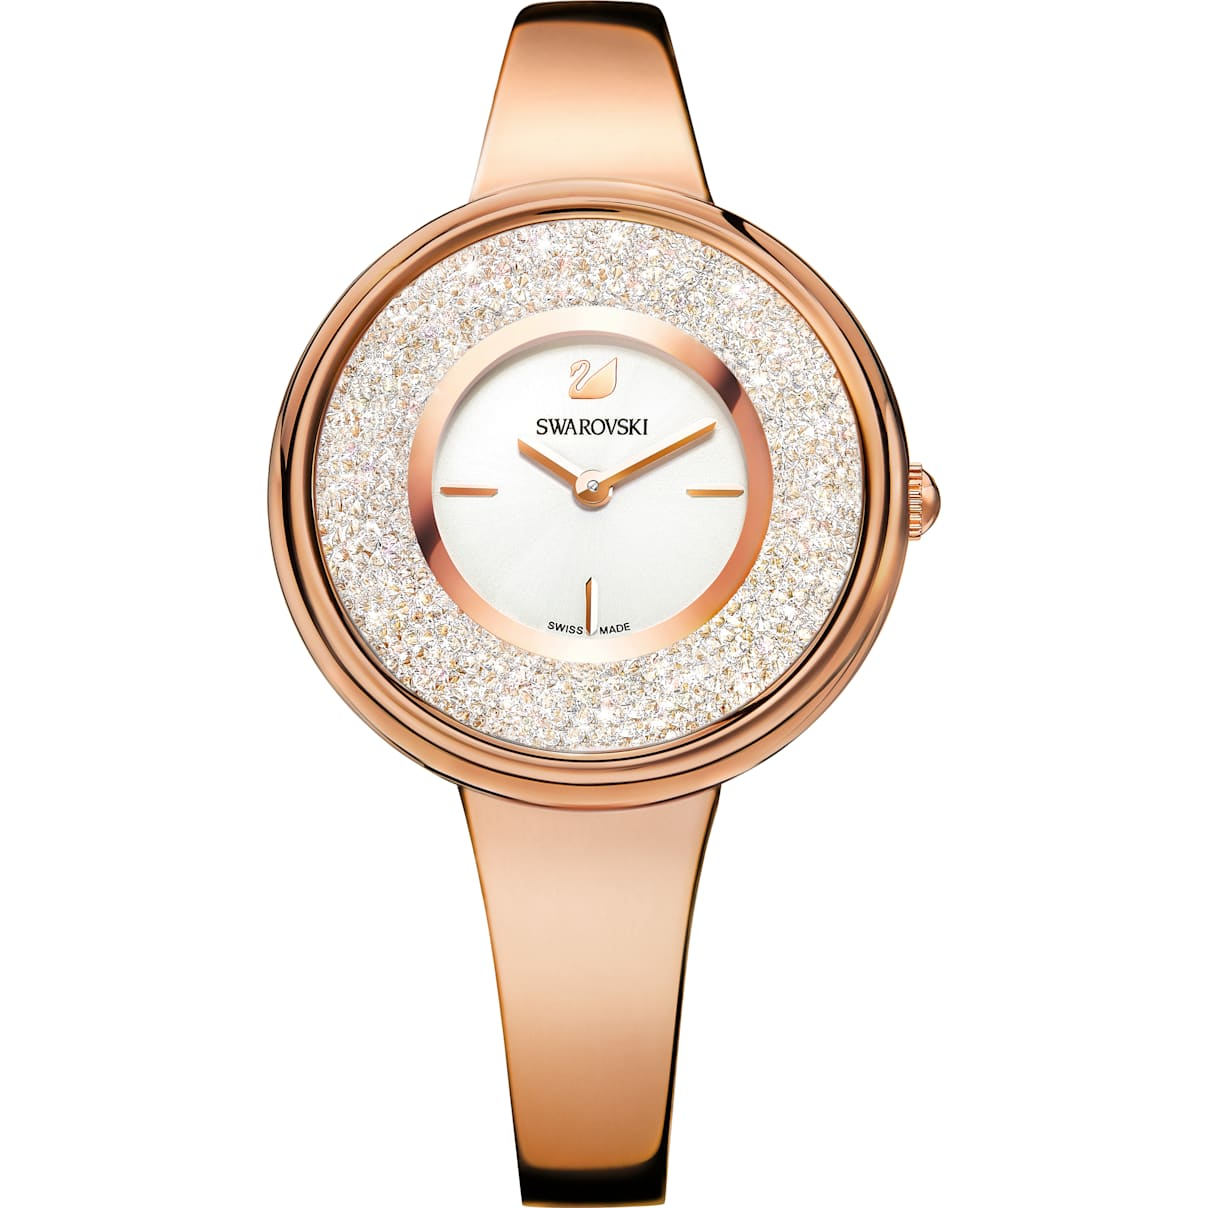 Swarovski Crystalline Pure Watch, Metal bracelet, White, Rose-gold tone PVD